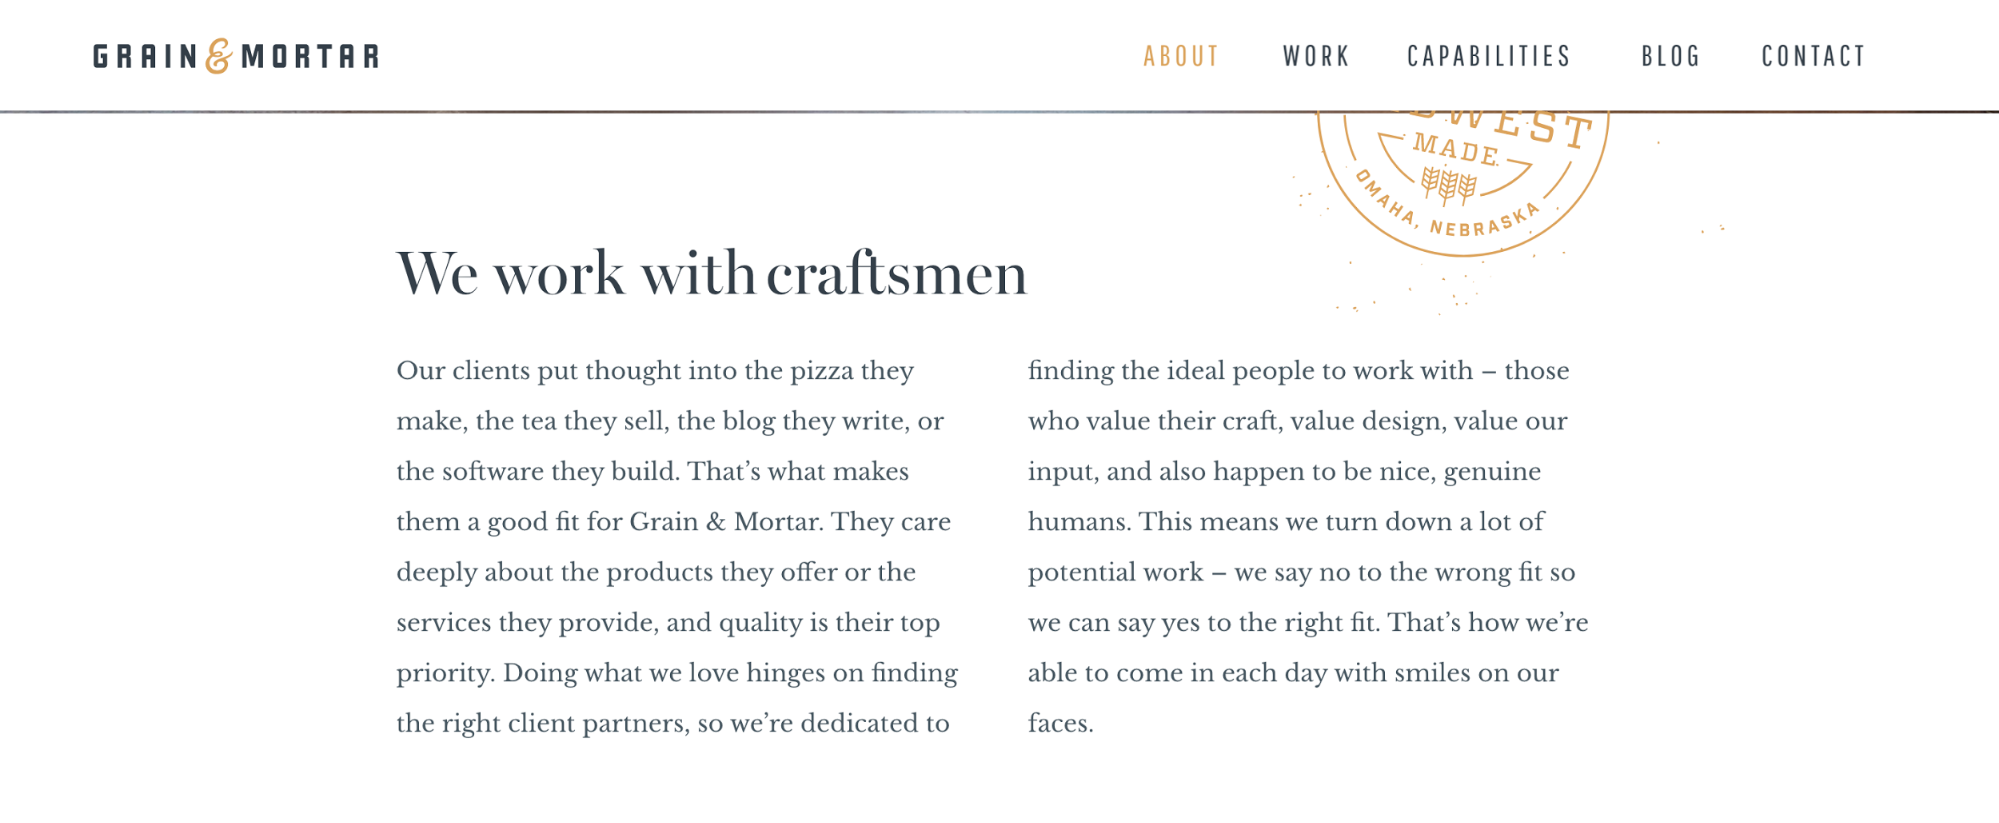 Grain Mortar About Us page